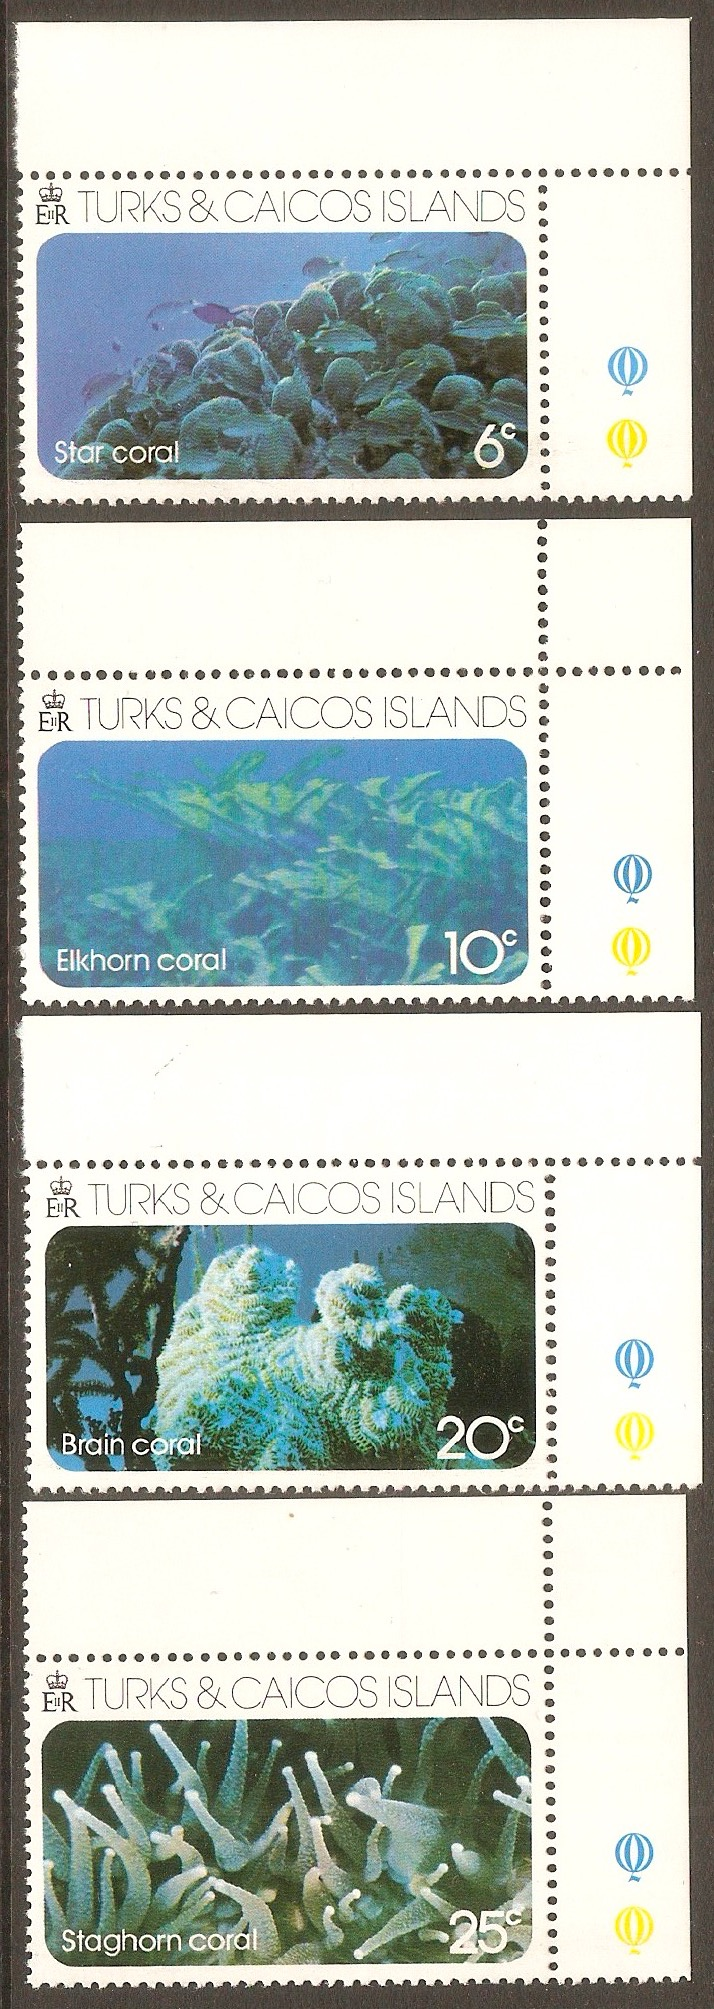 Turks and Caicos 1975 Island Coral set. SG442-SG445.